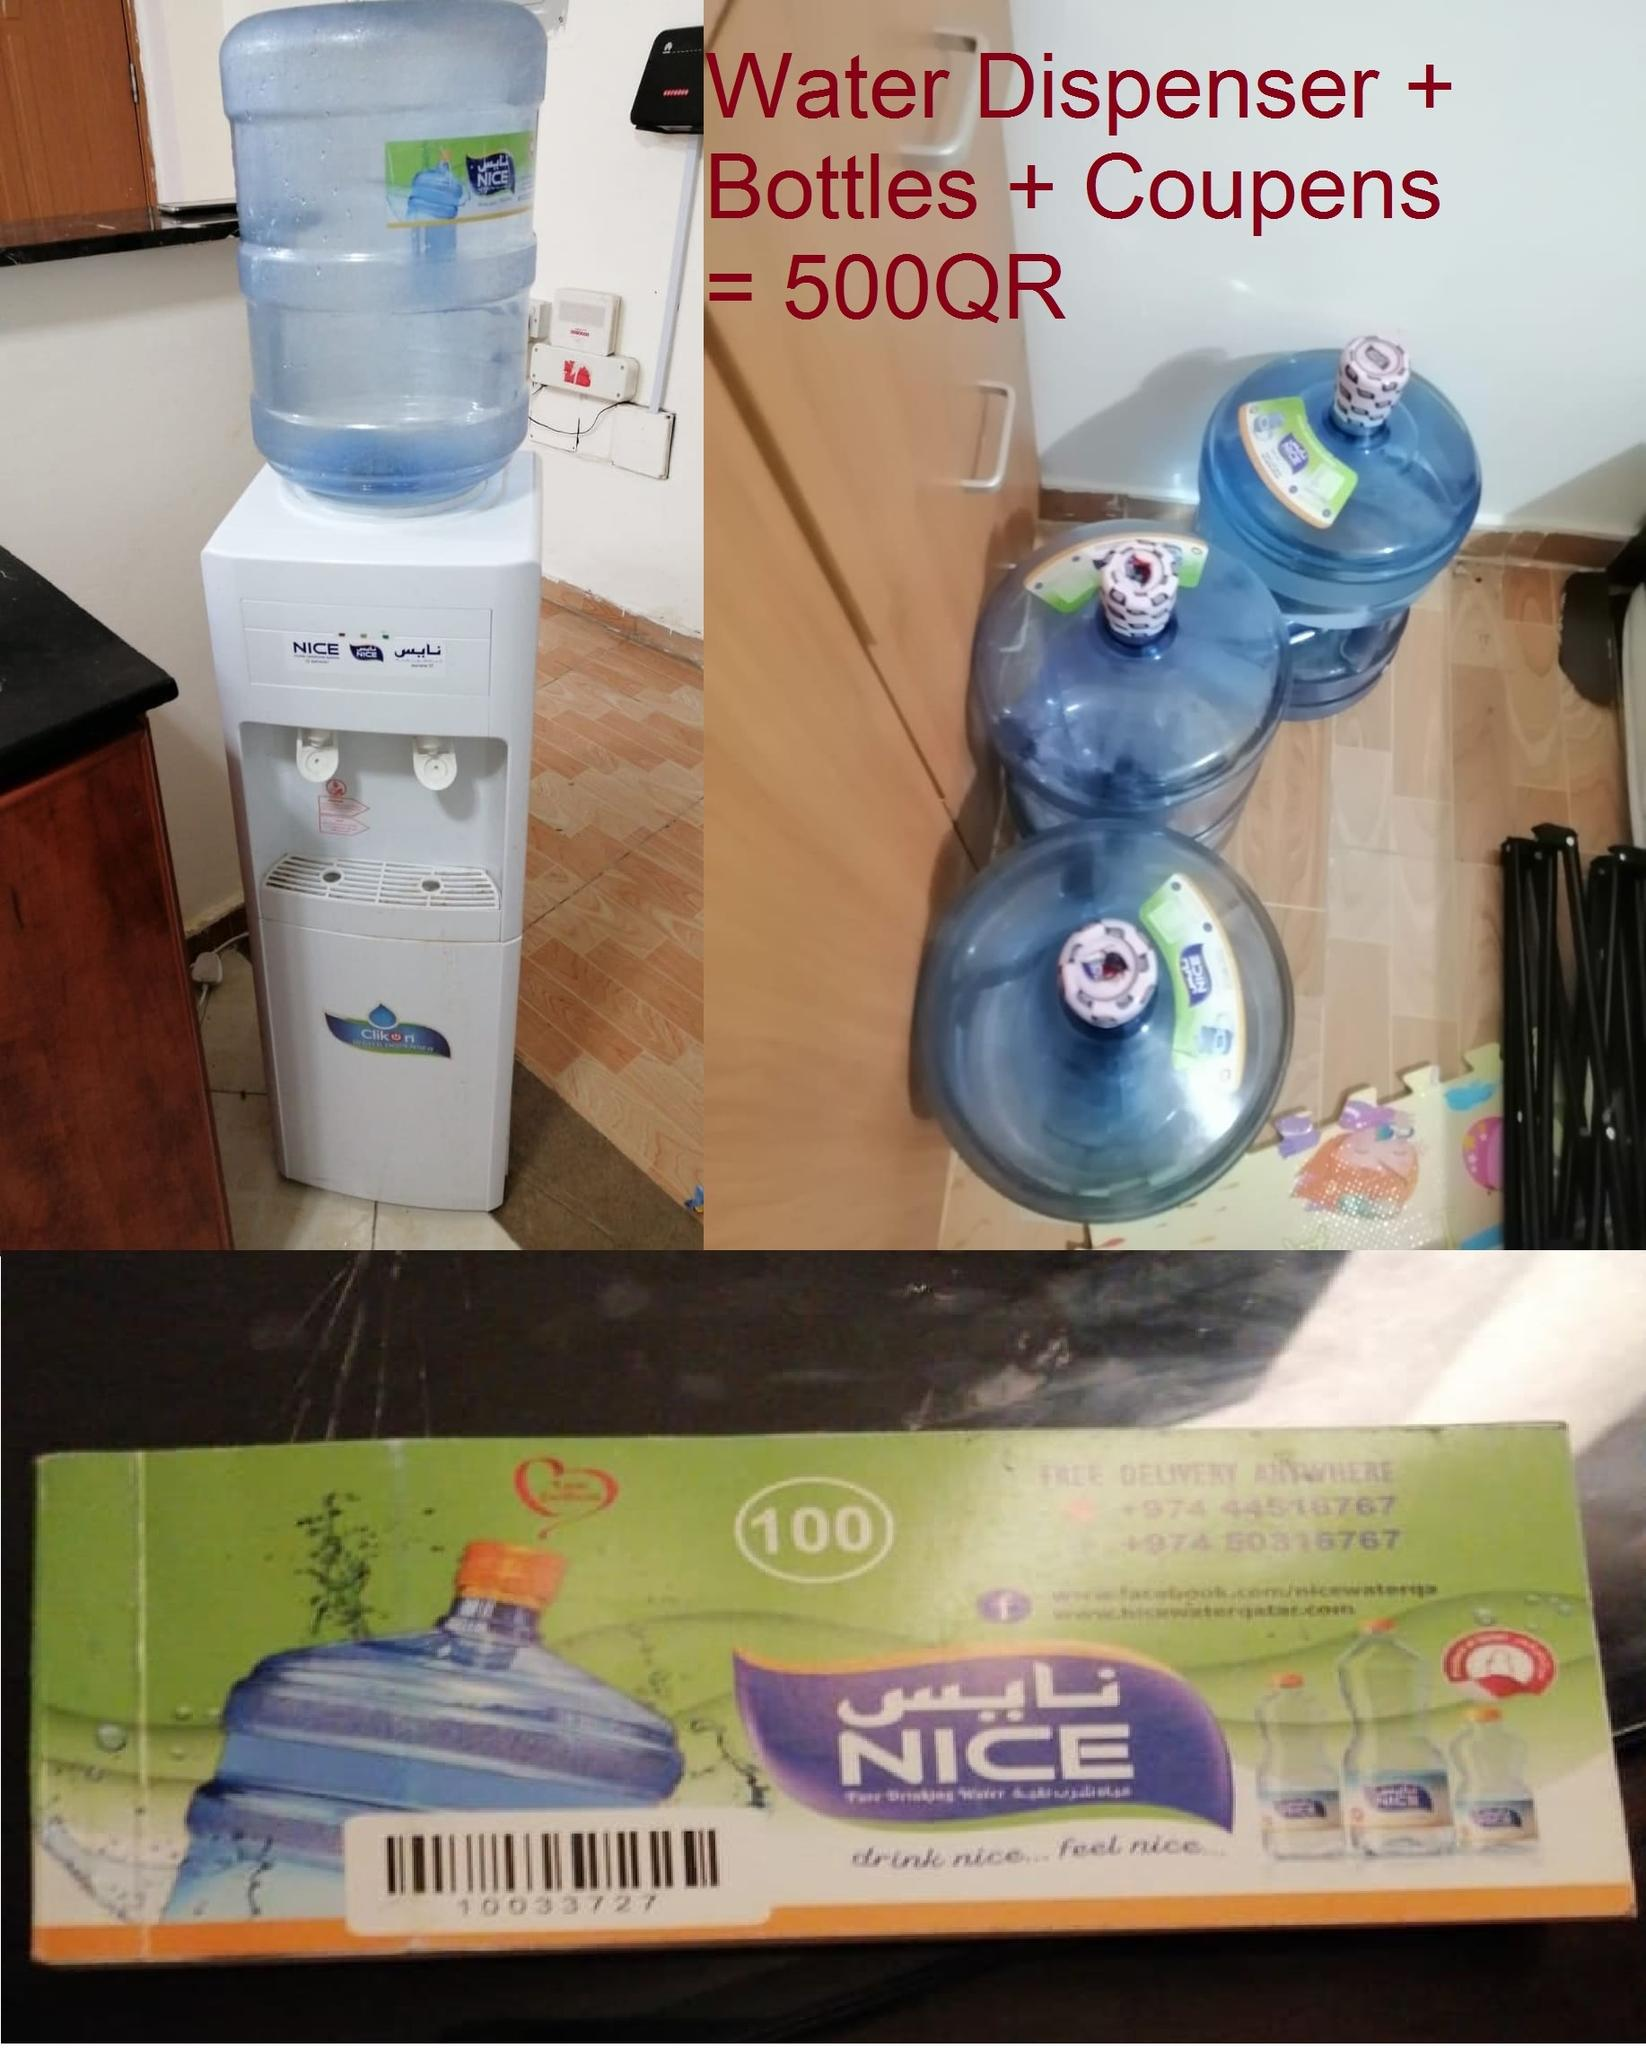 Water Dispenser+Coupons+Bottles and Sofa Covers